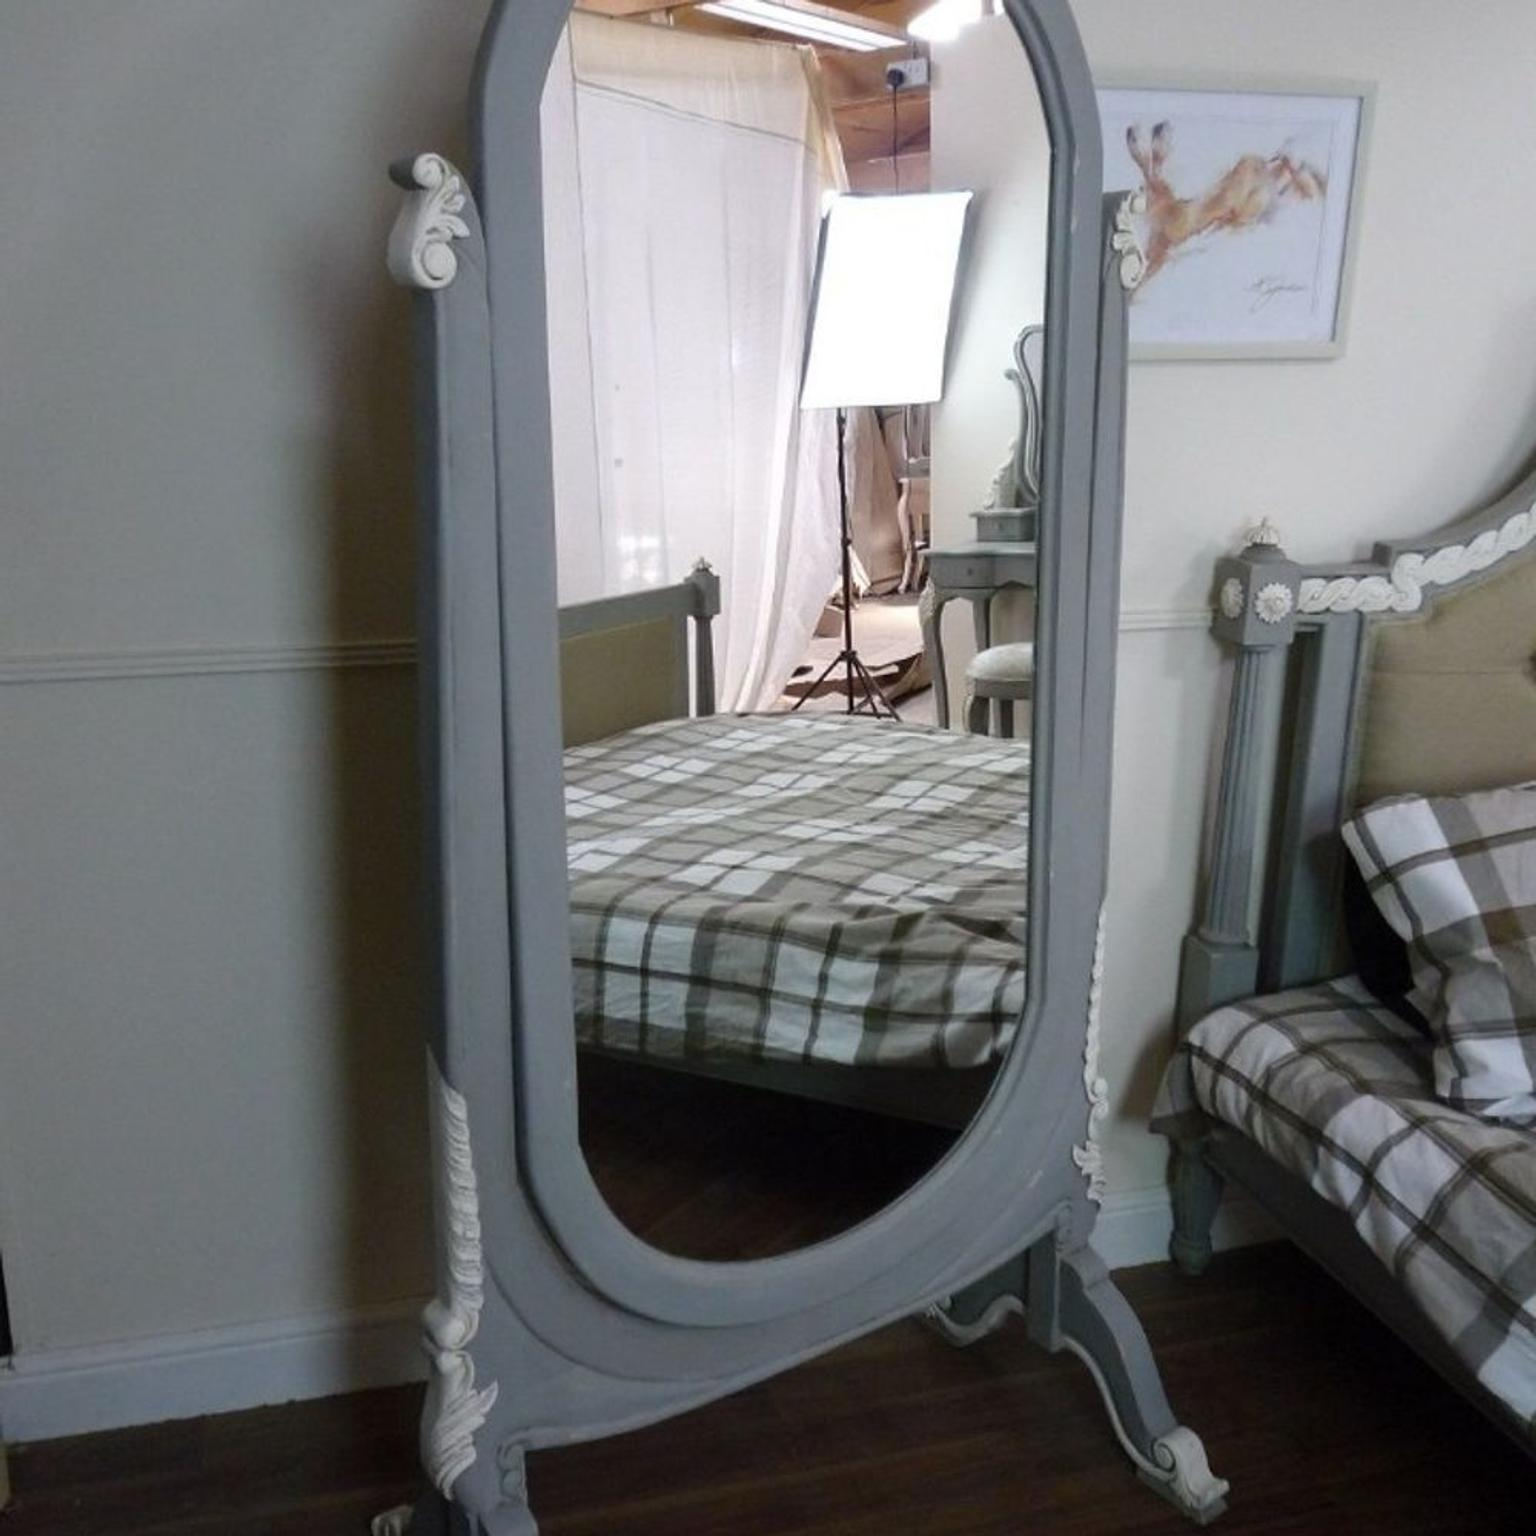 - FRENCH CH-EVAL STANDING MIRROR * In Ng5 6ae Nottingham Für 390,00